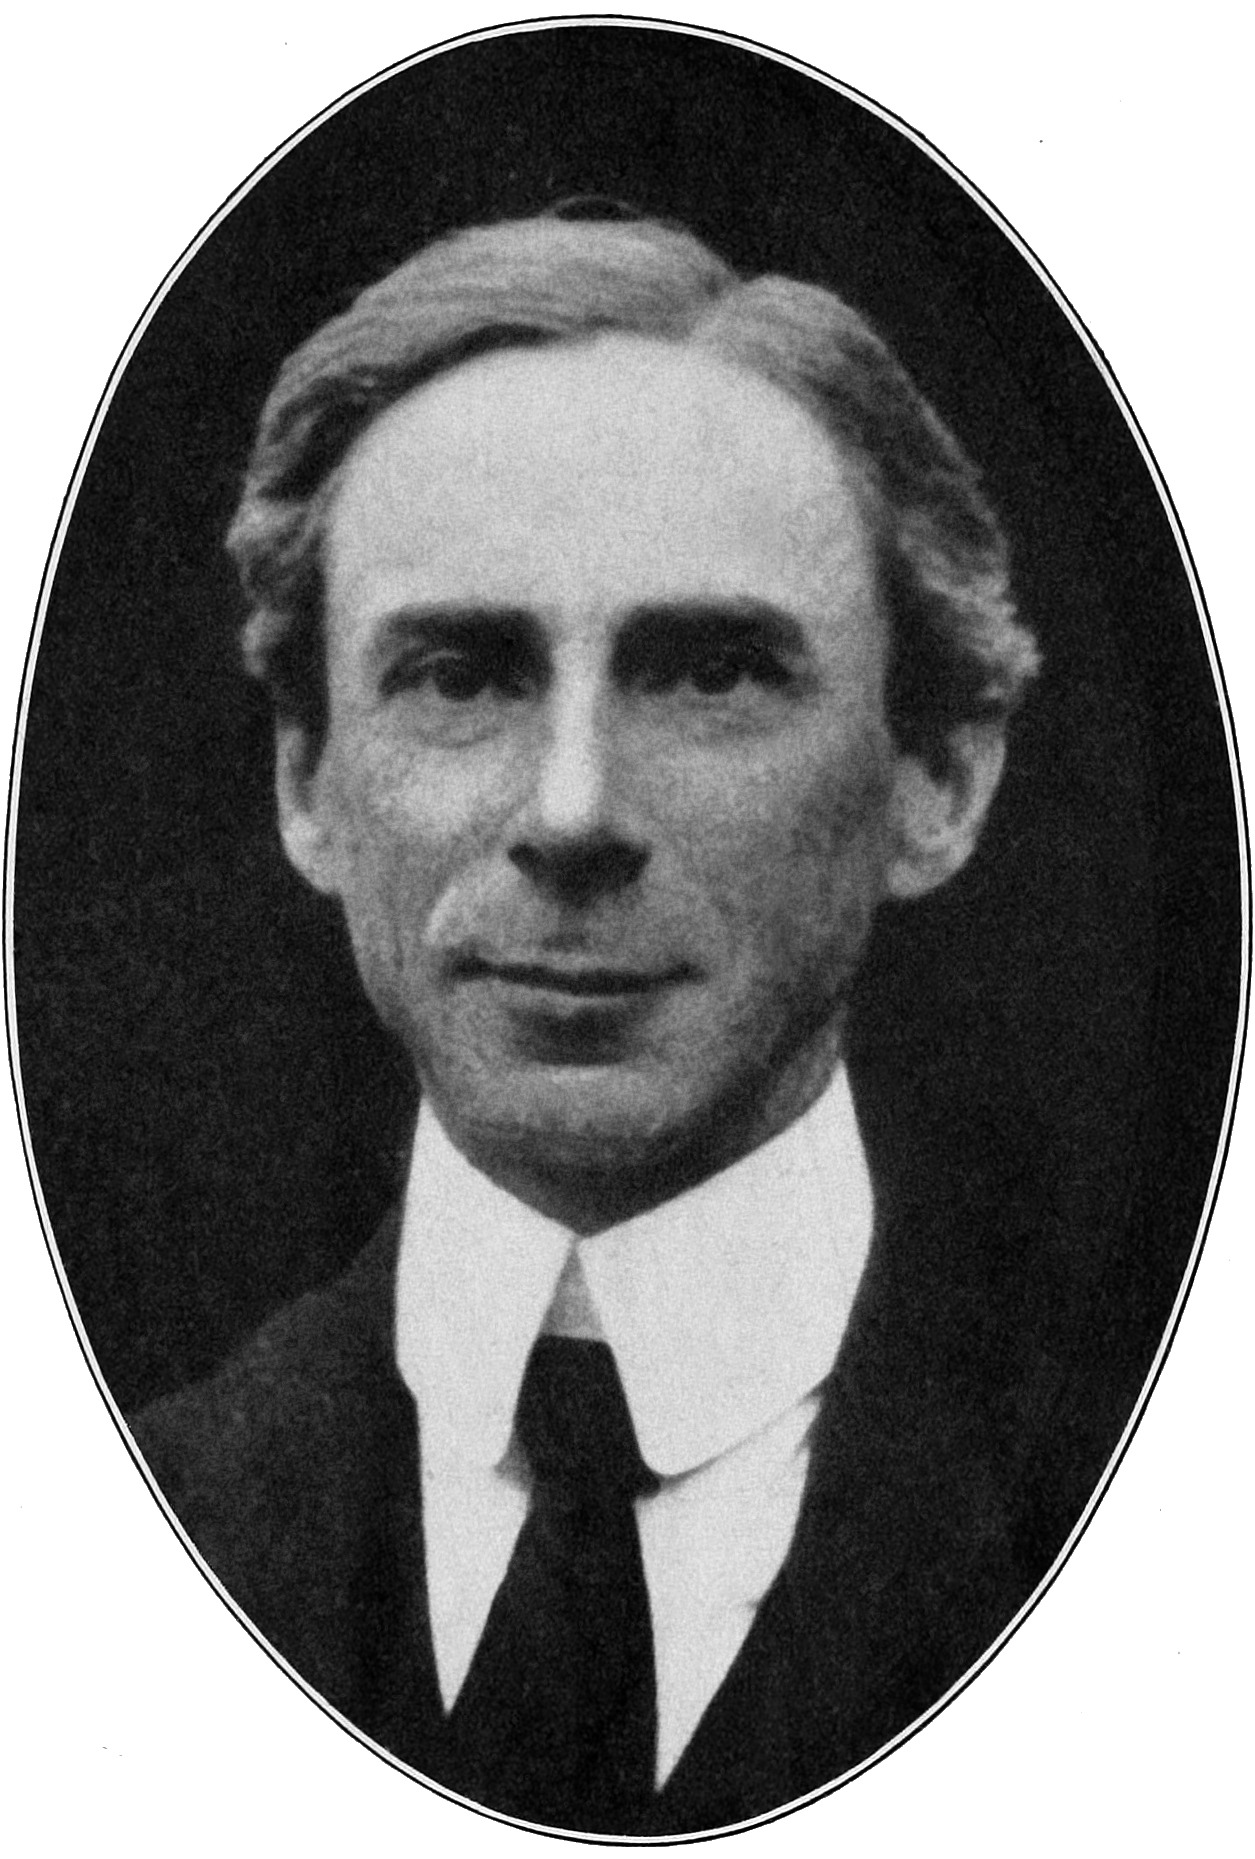 Bertrand Arthur William Russell, 3rd Earl Russell, (1872 – 1970) was a British nobleman, philosopher, logician, mathematician, historian, and social critic. At various points in his life he considered himself a liberal, a socialist, and a pacifist, but he also admitted that he had never been any of these in any profound sense.